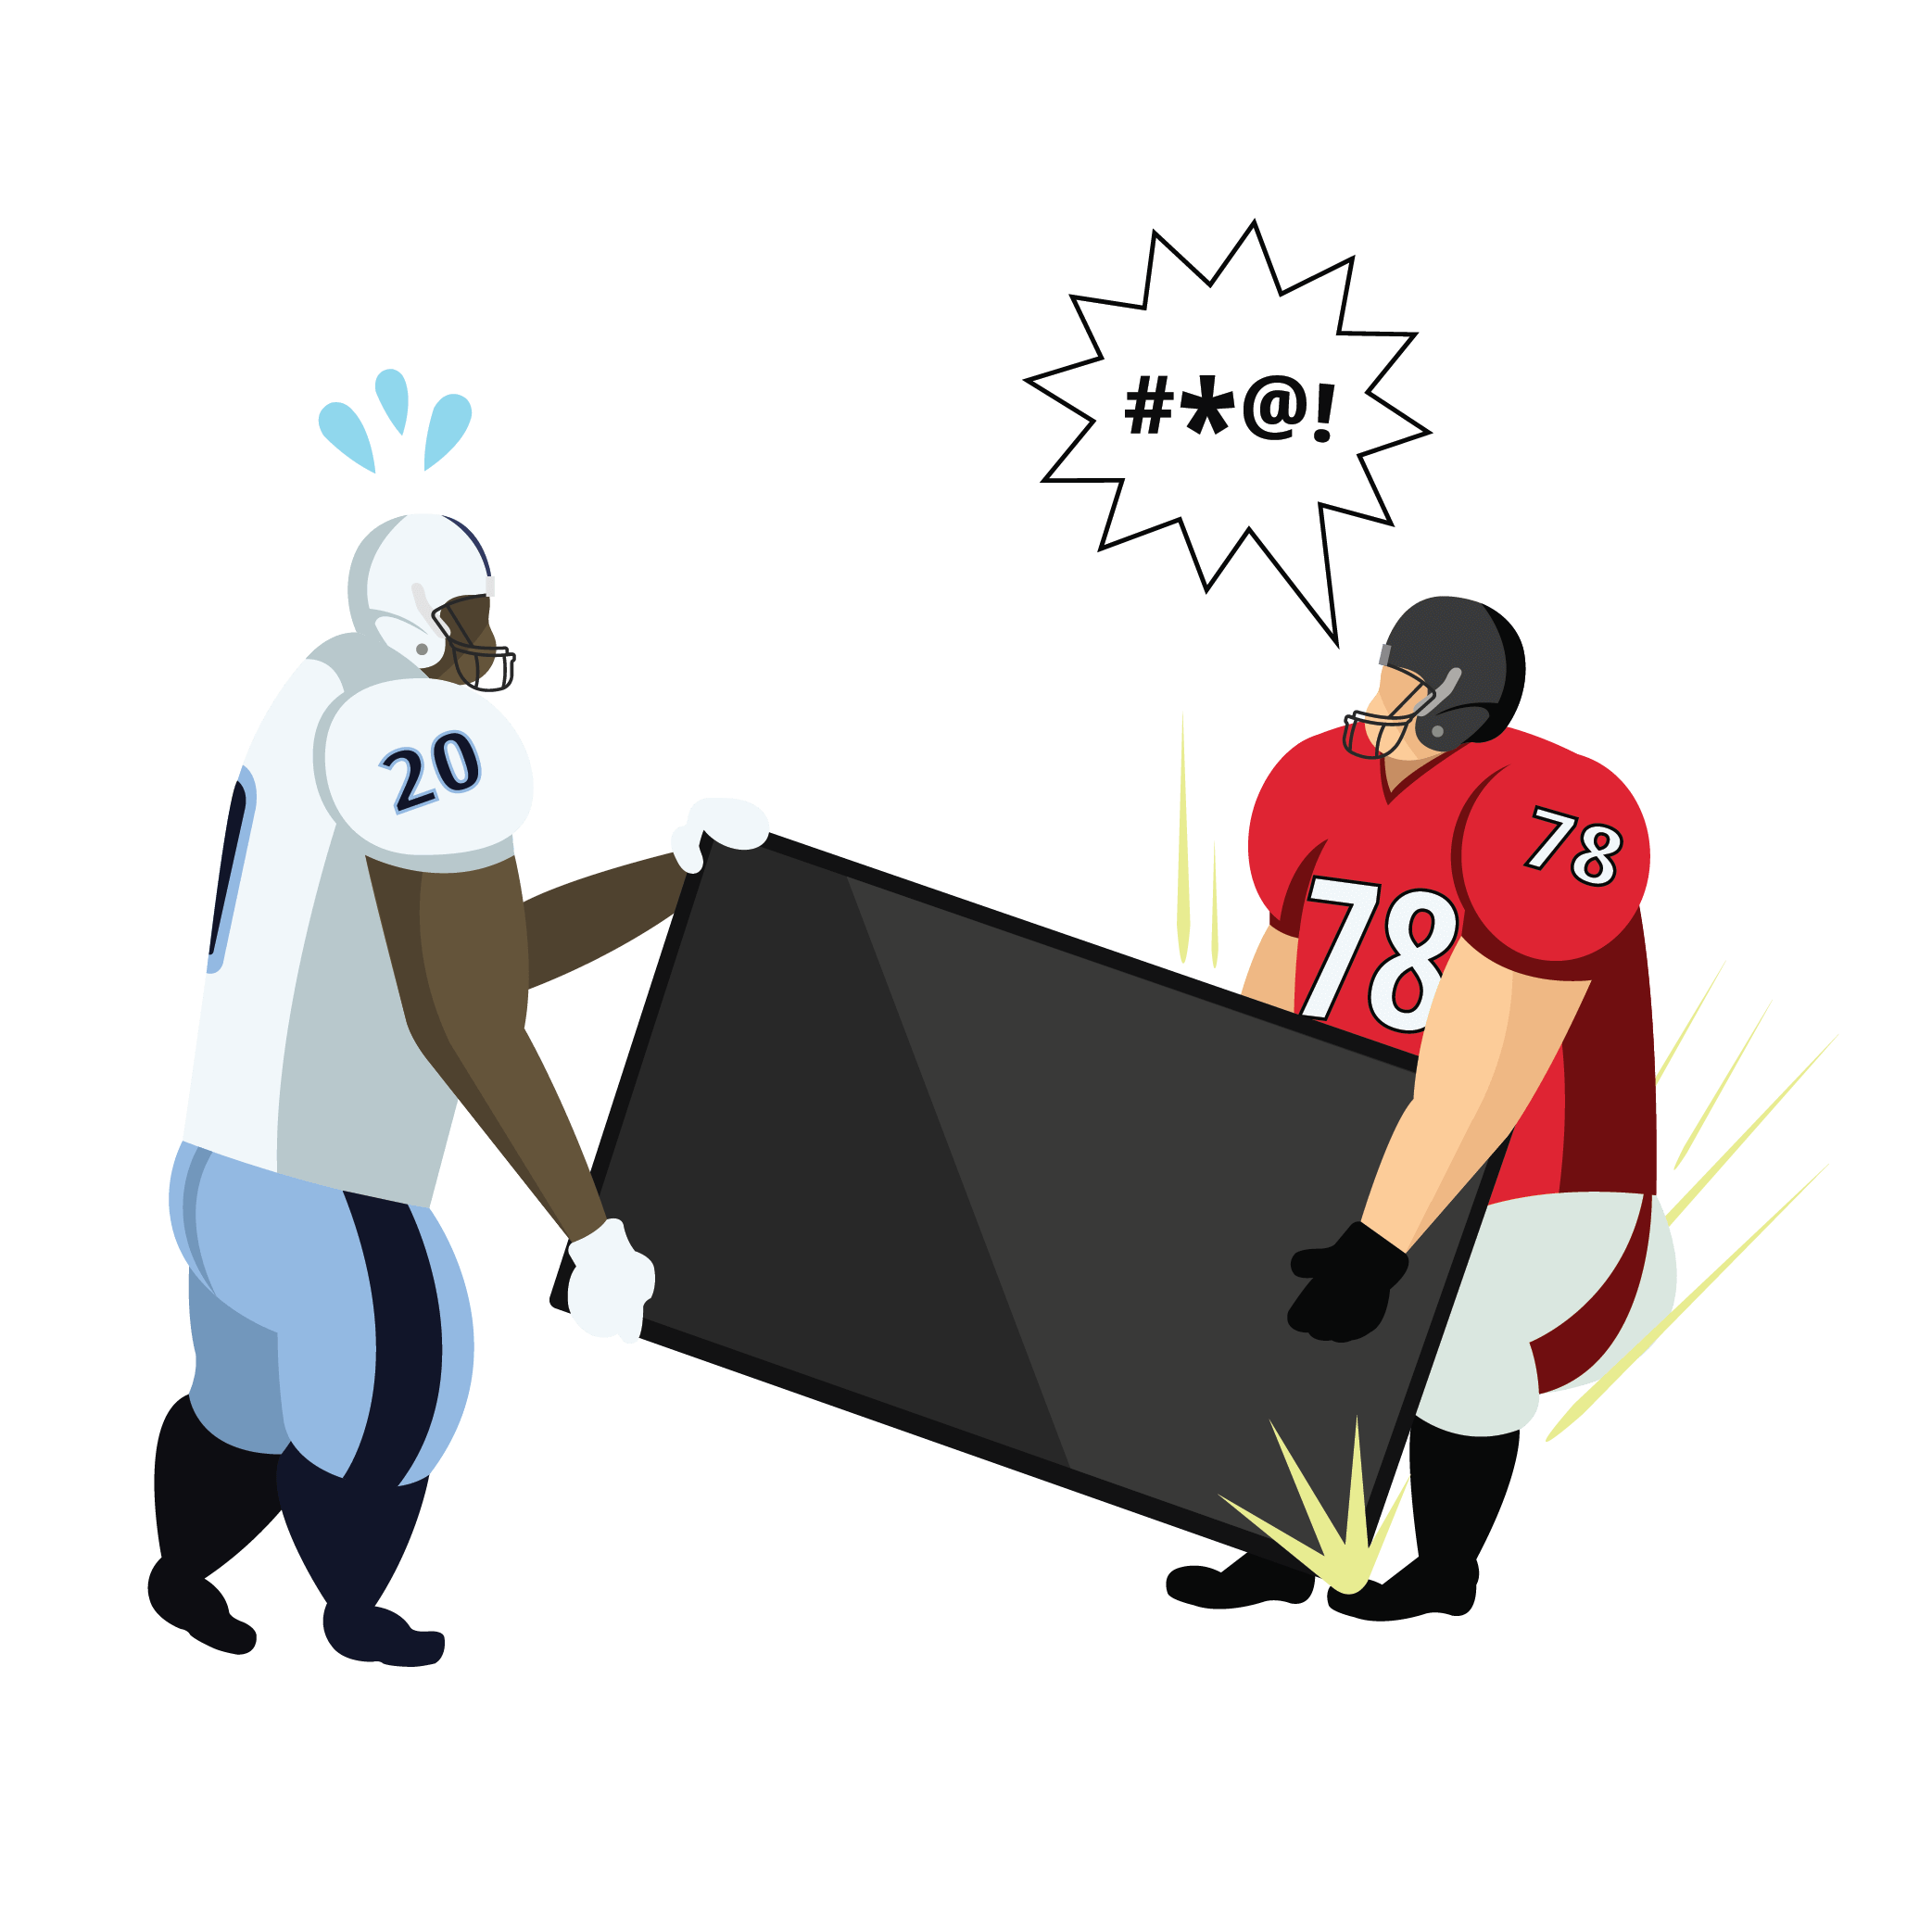 Two animated football players drop a TV on a toe